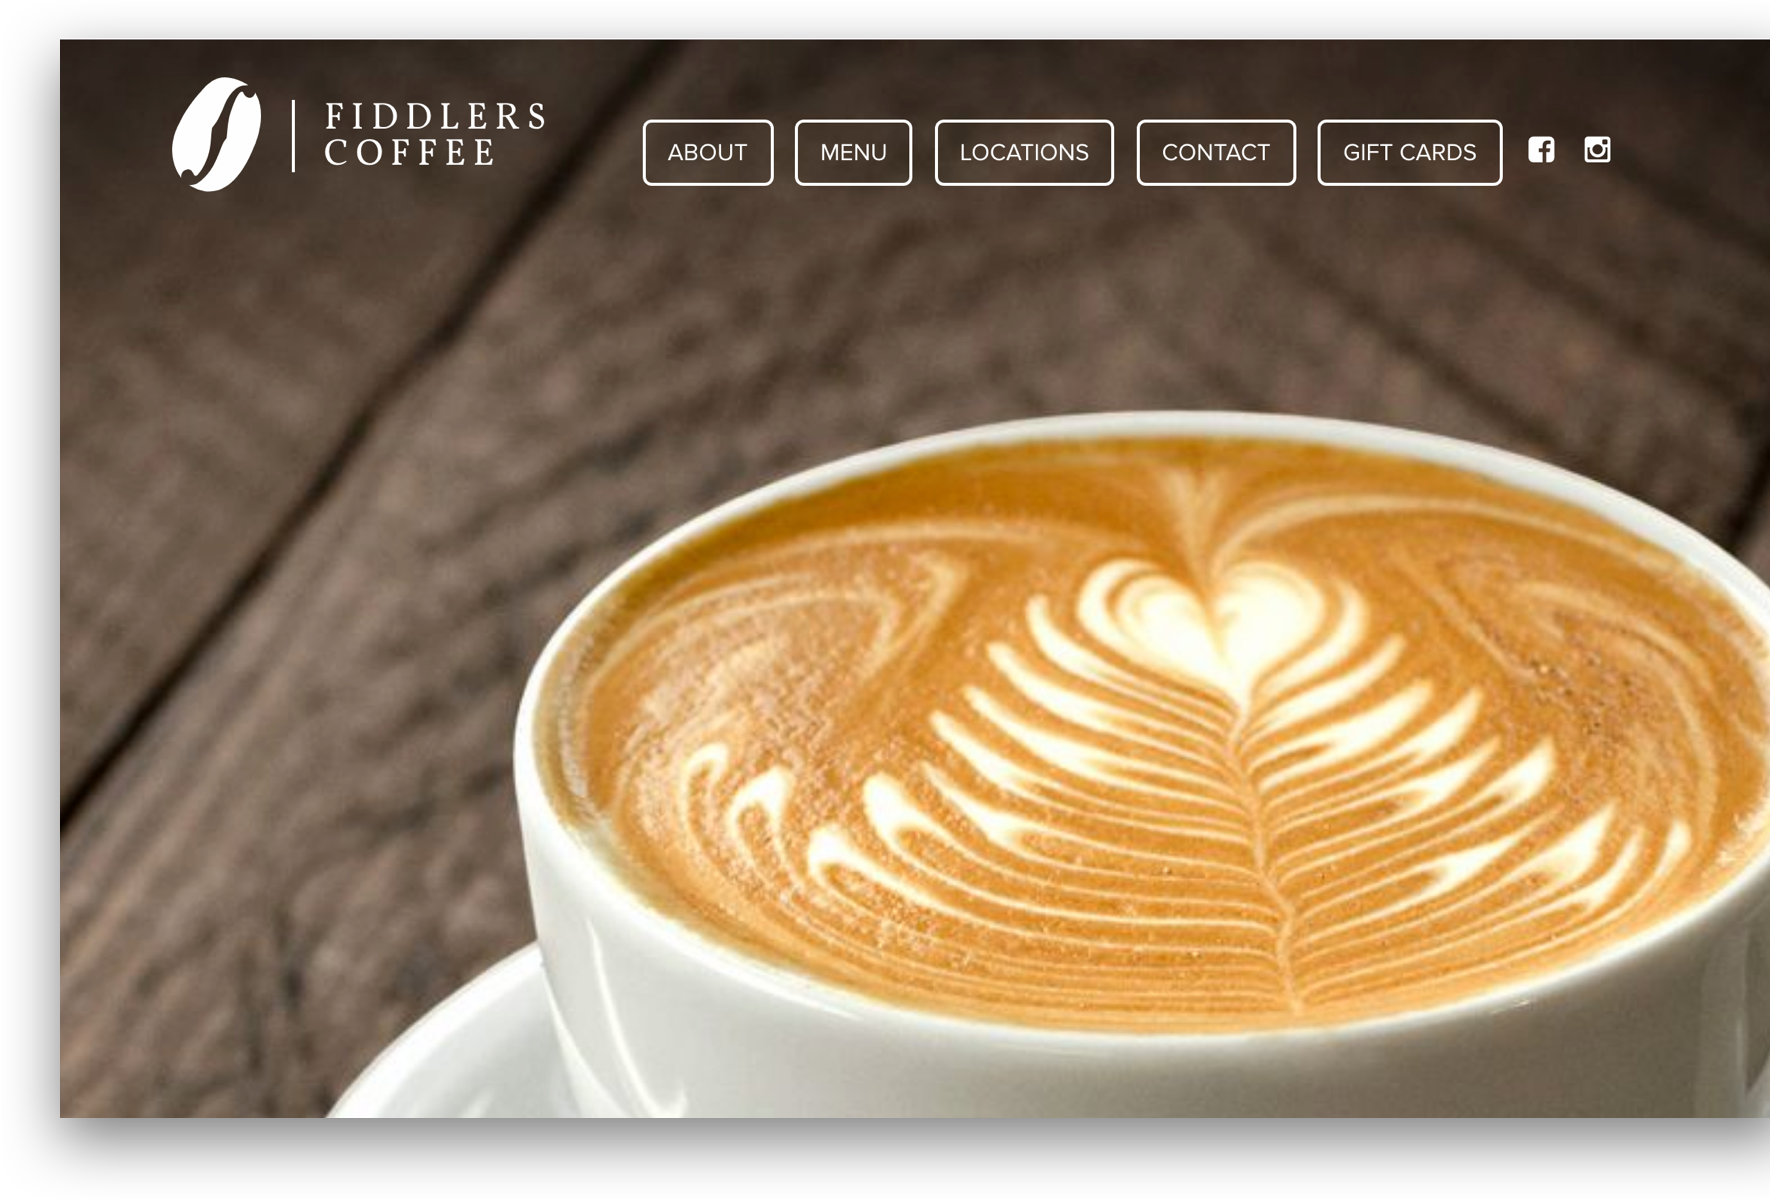 Fiddlers Coffee Website